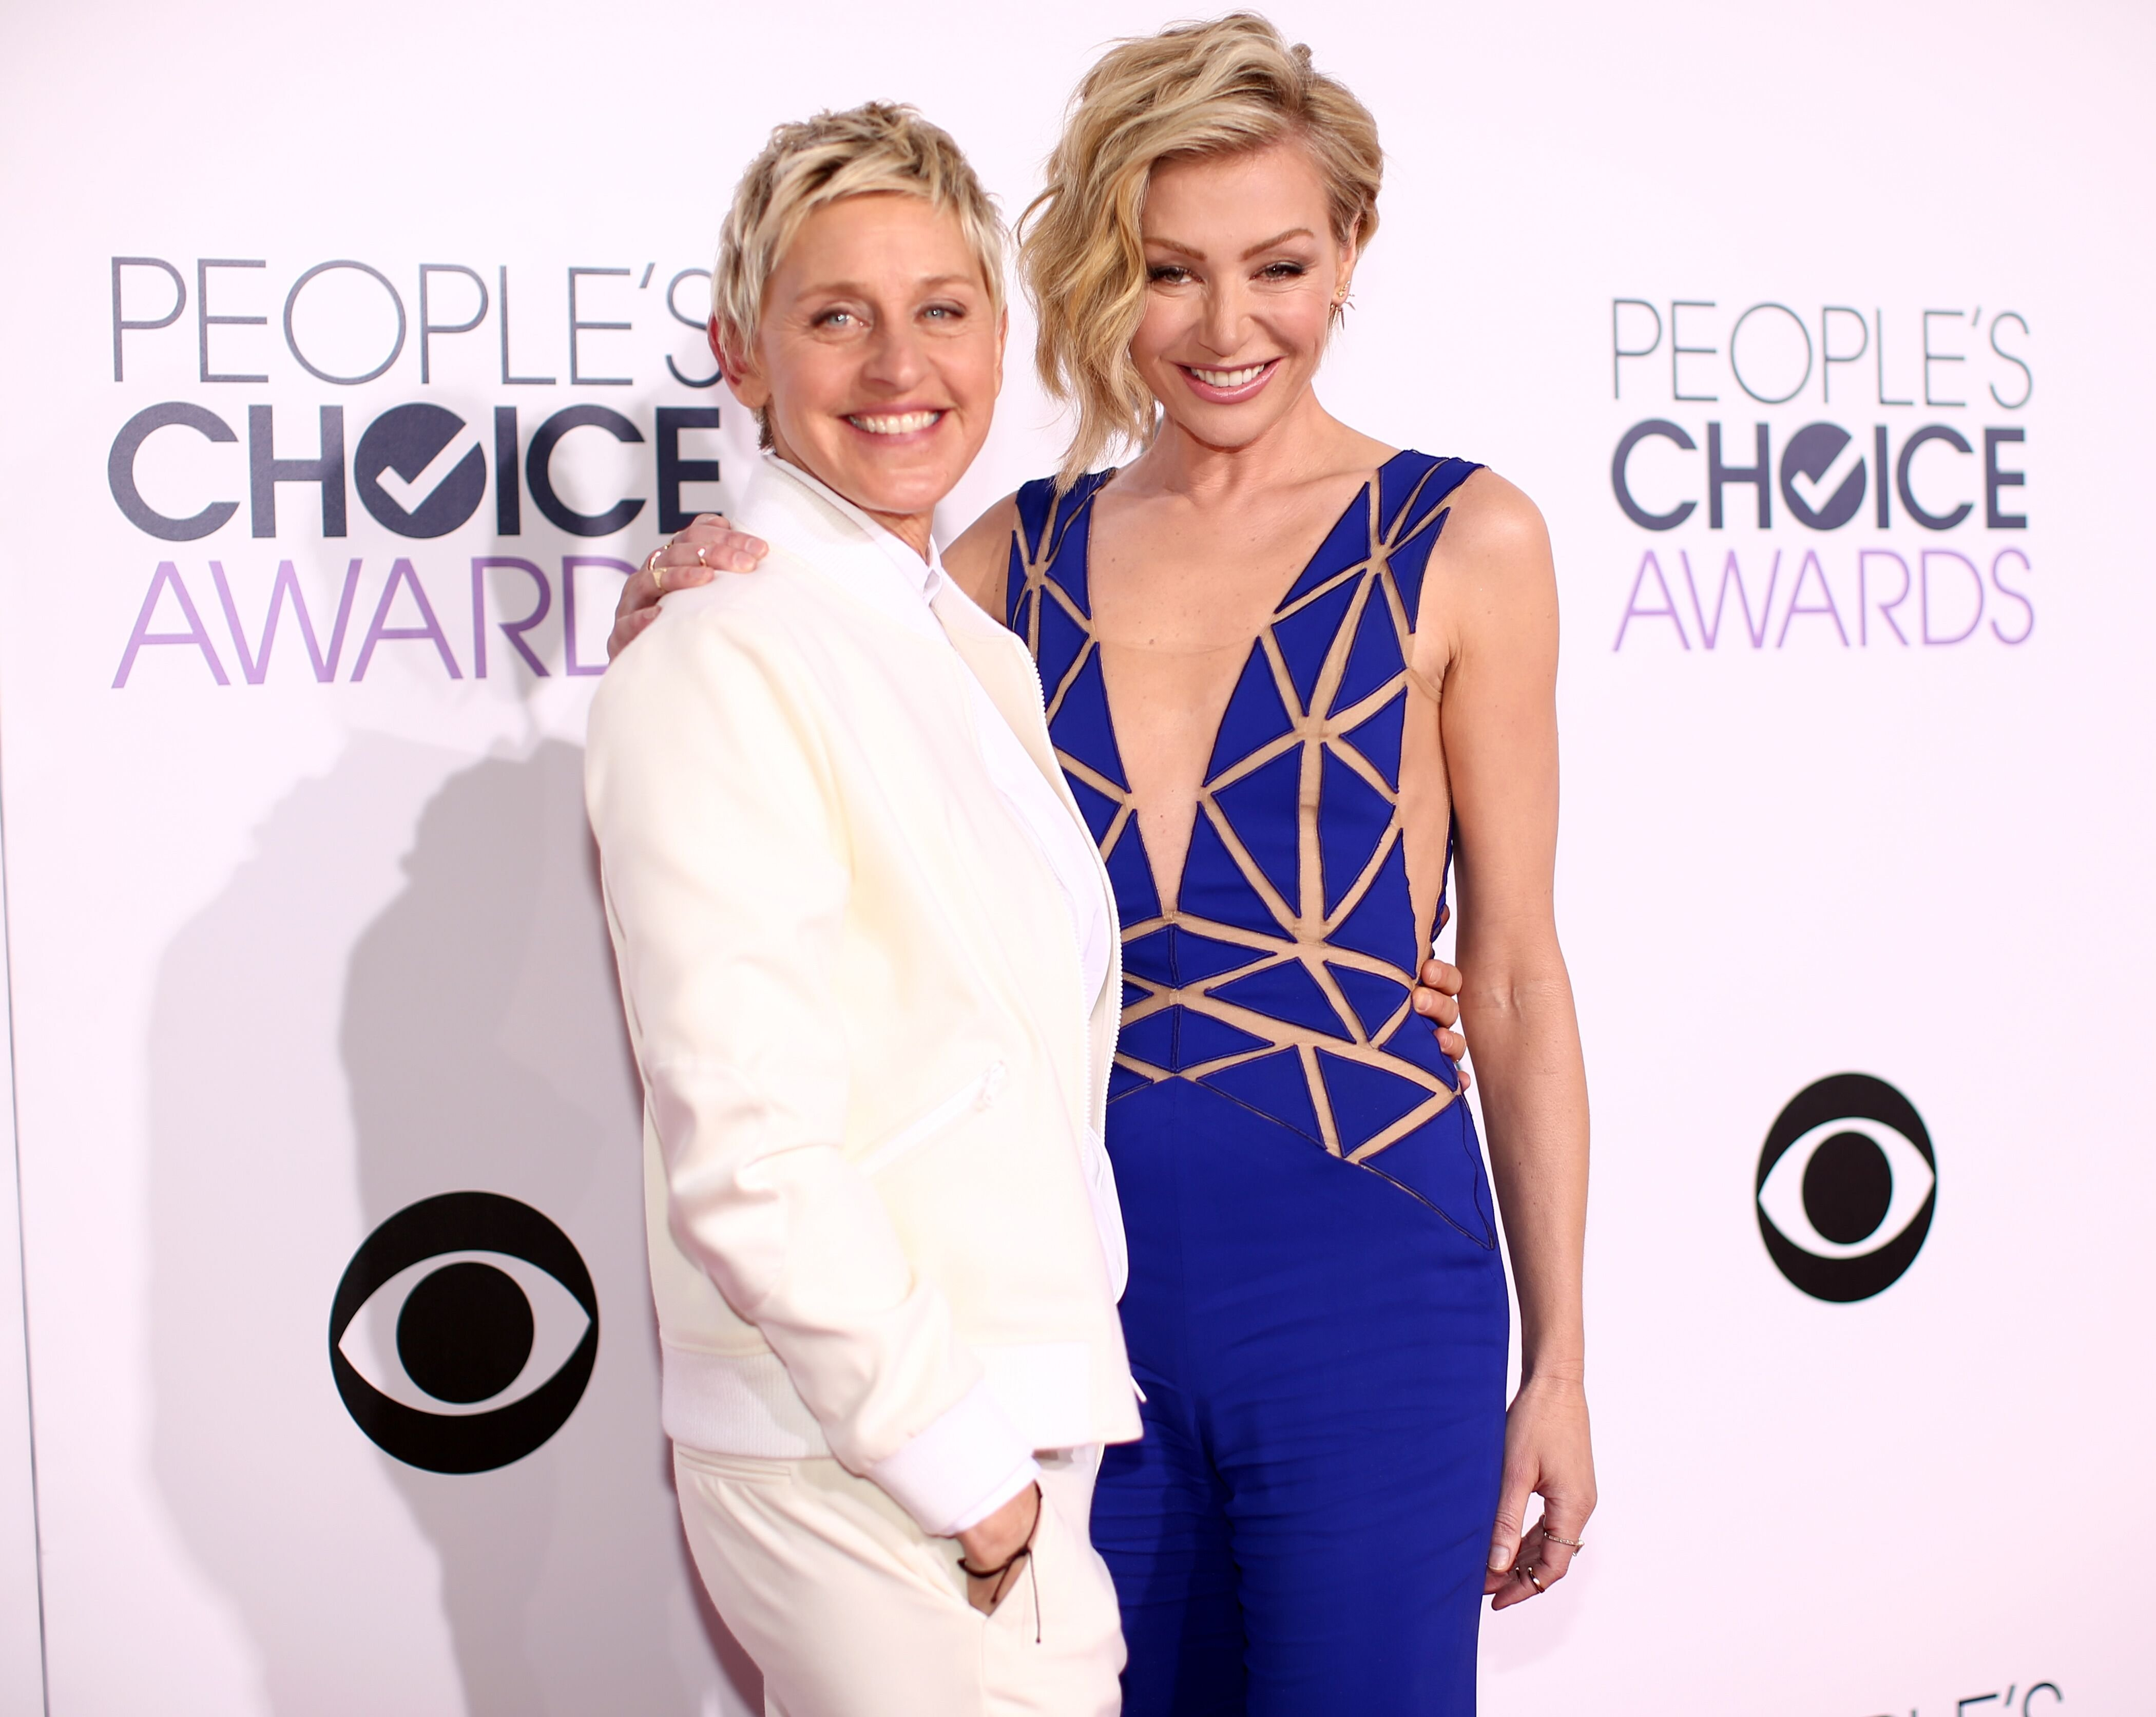 Ellen DeGeneres and Portia De Rossi at the People's Choice Awards | Source: Getty Images/GlobalImagesUkraine